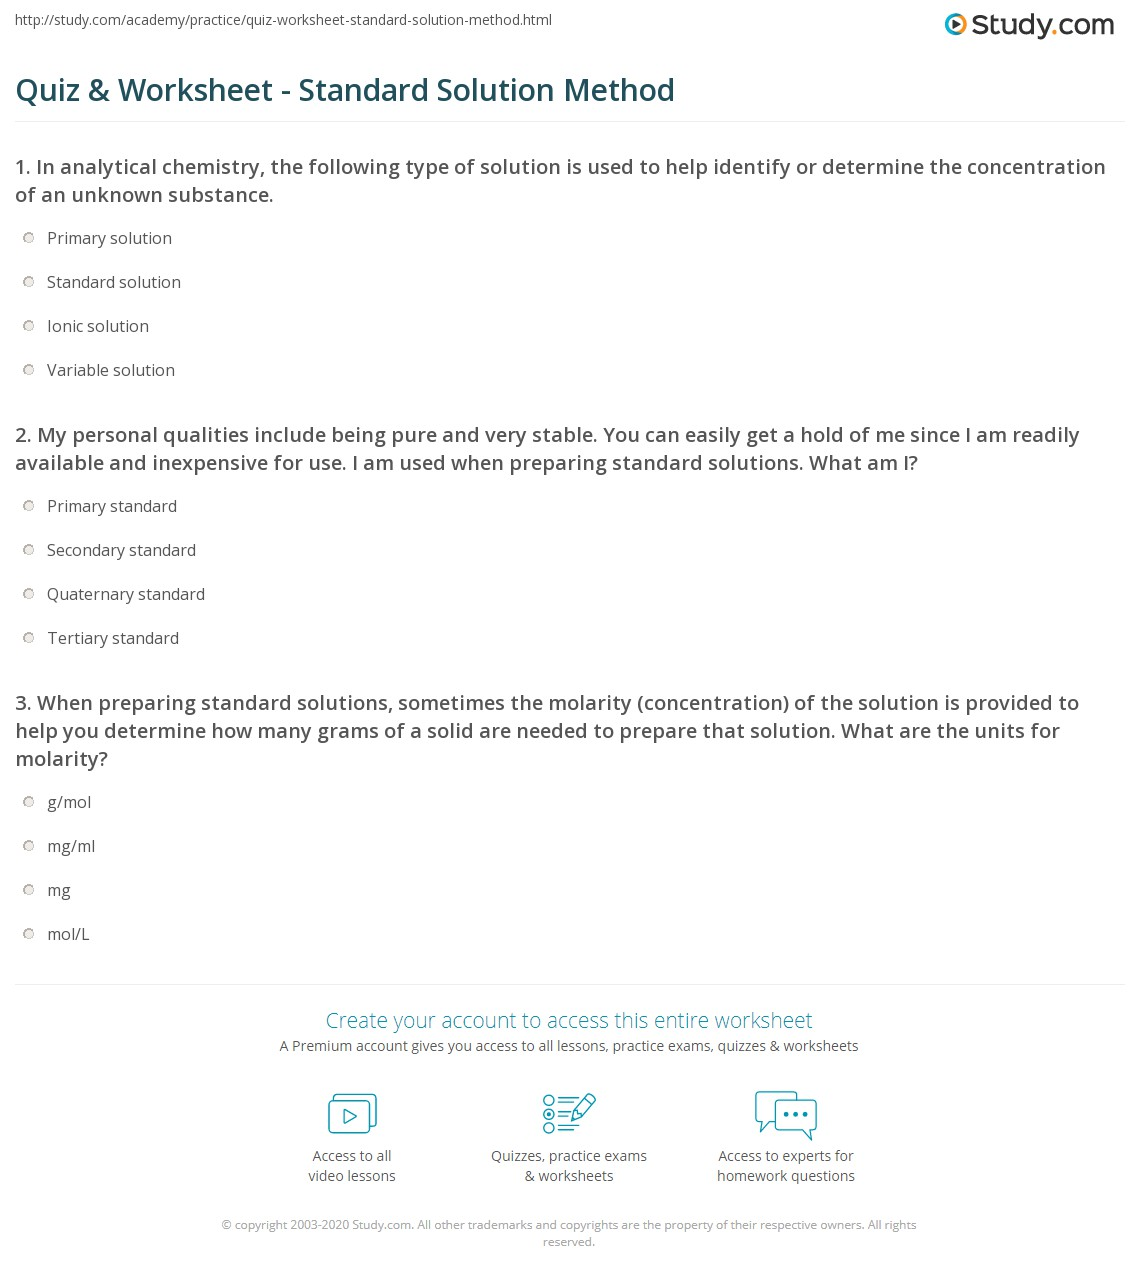 Worksheets Molarity Worksheet Chemistry quiz worksheet standard solution method study com 1 my personal qualities include being pure and very stable you can easily get a hold of me since i am readily available inexpensive for u